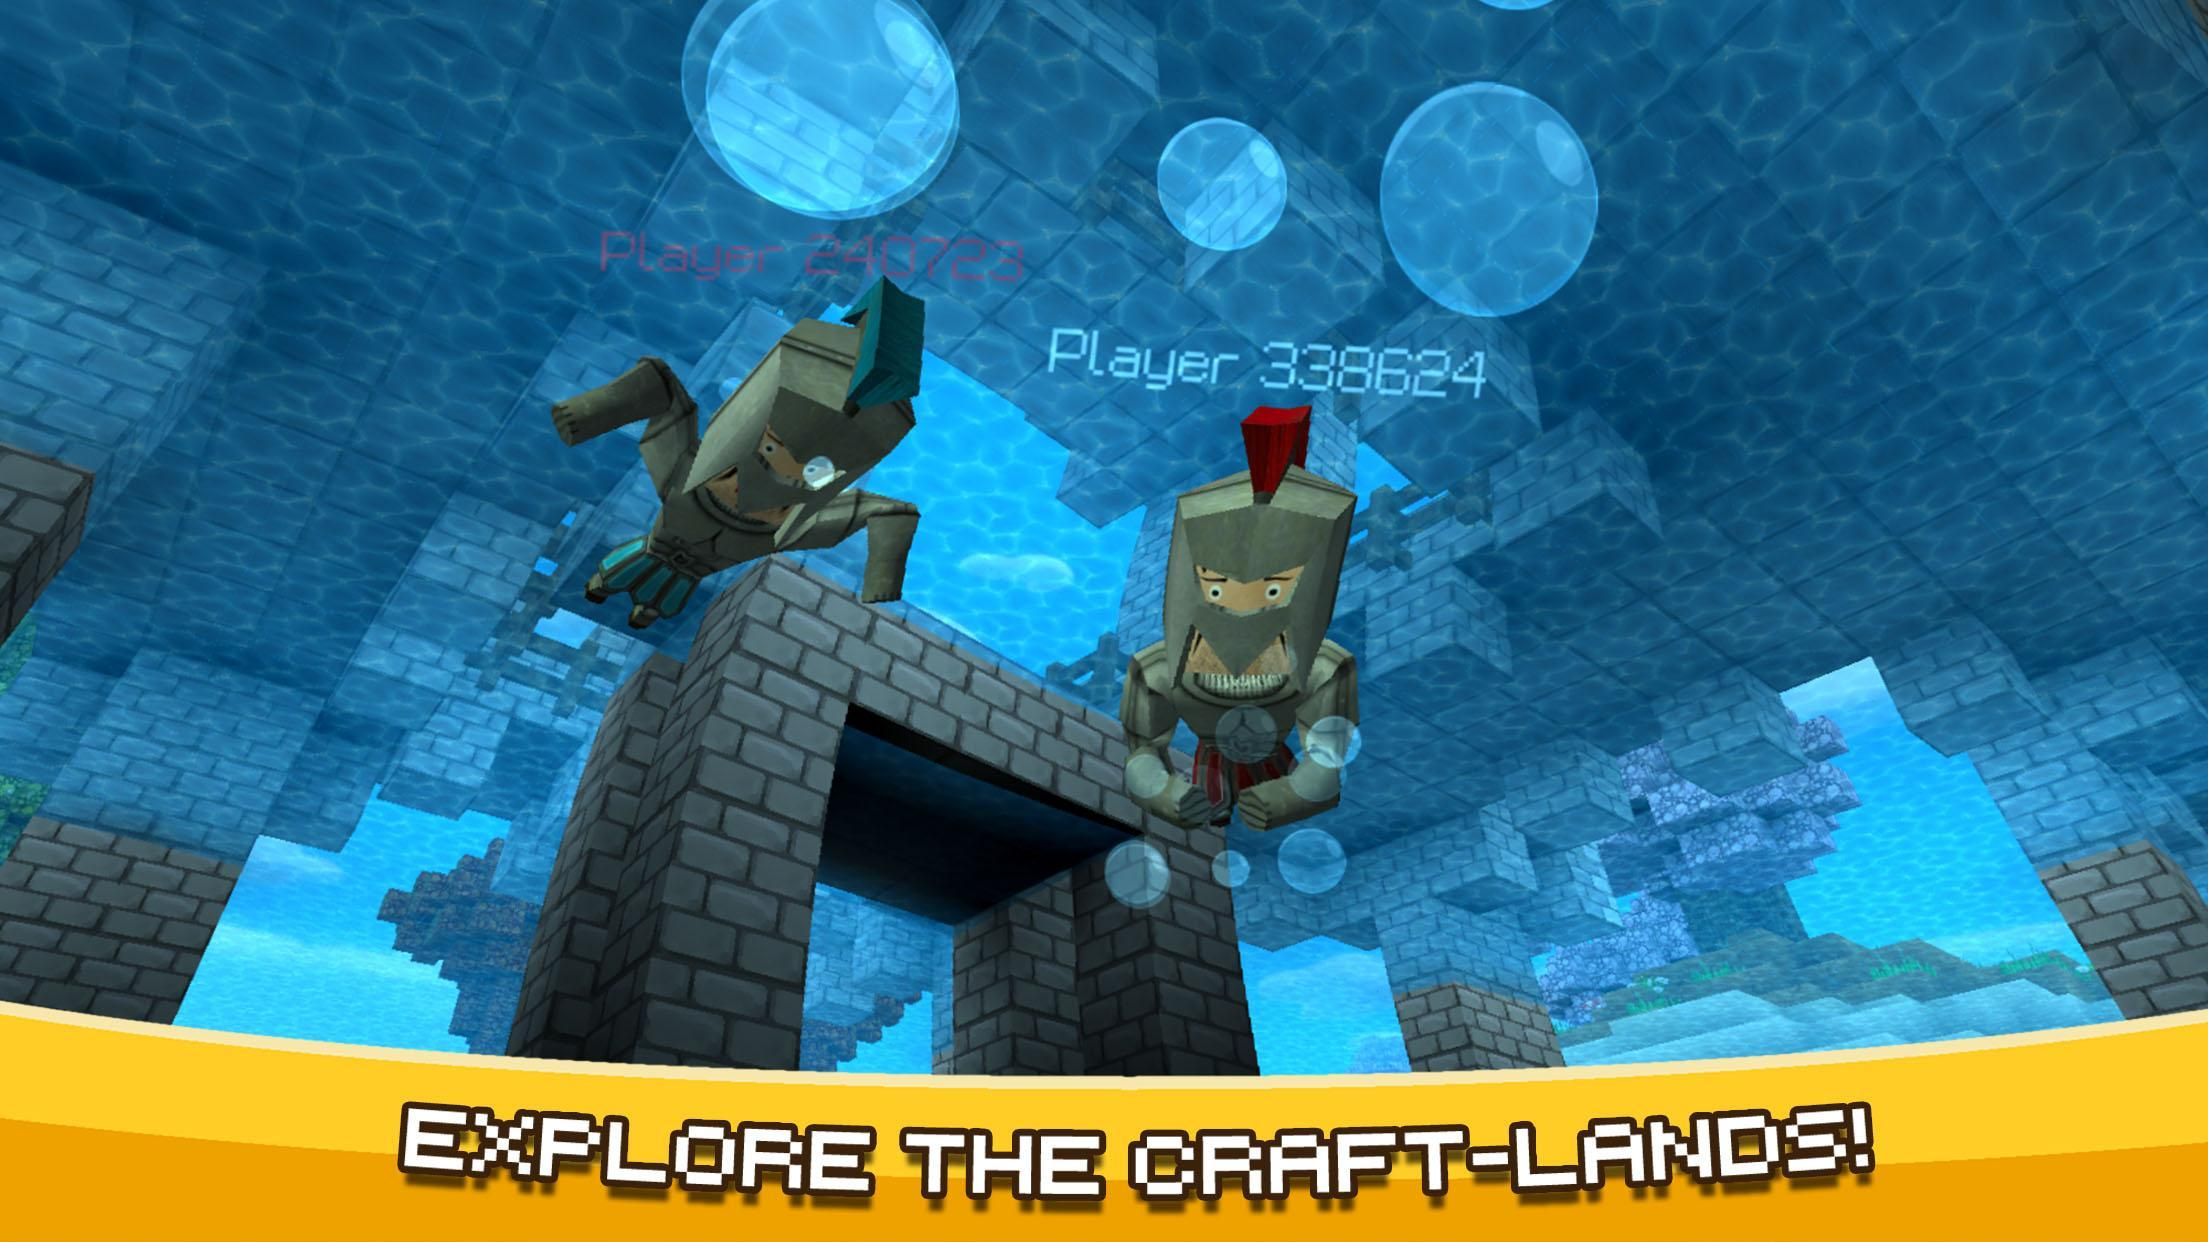 Castle Crafter for Android - APK Download